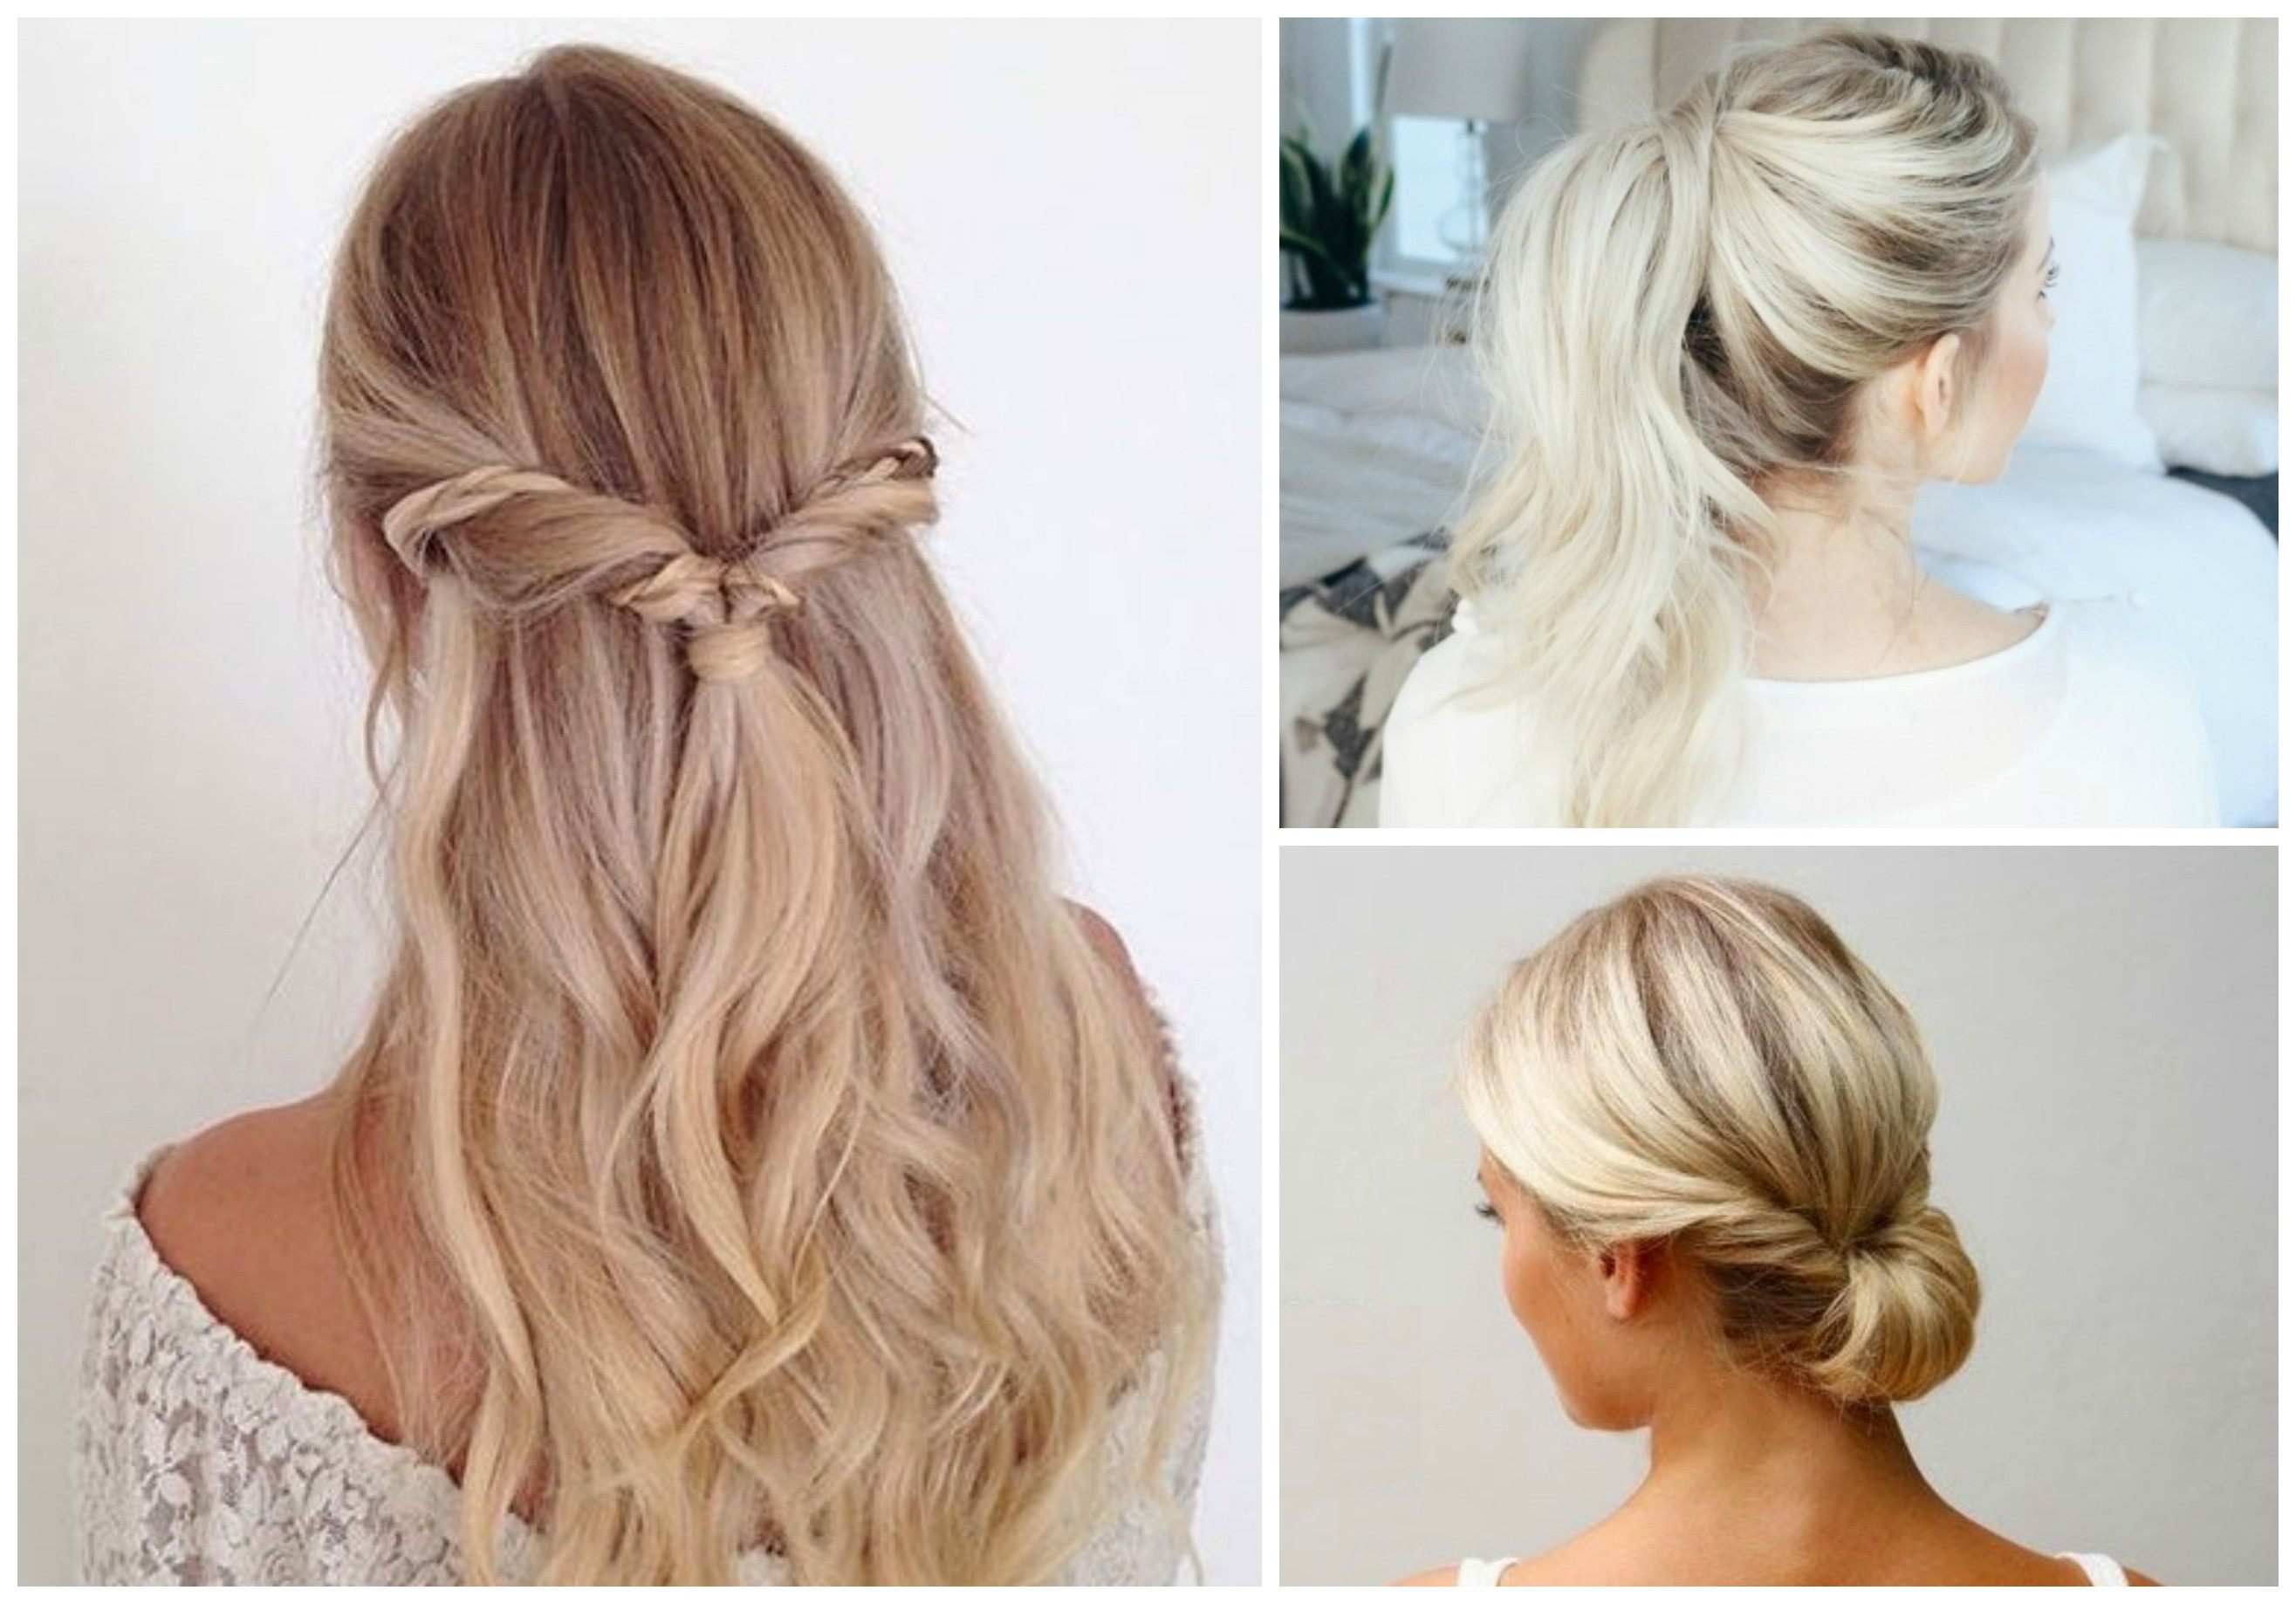 Super Cute And Easy Hairstyles  11 Super Easy Hairstyles for Everyday Life